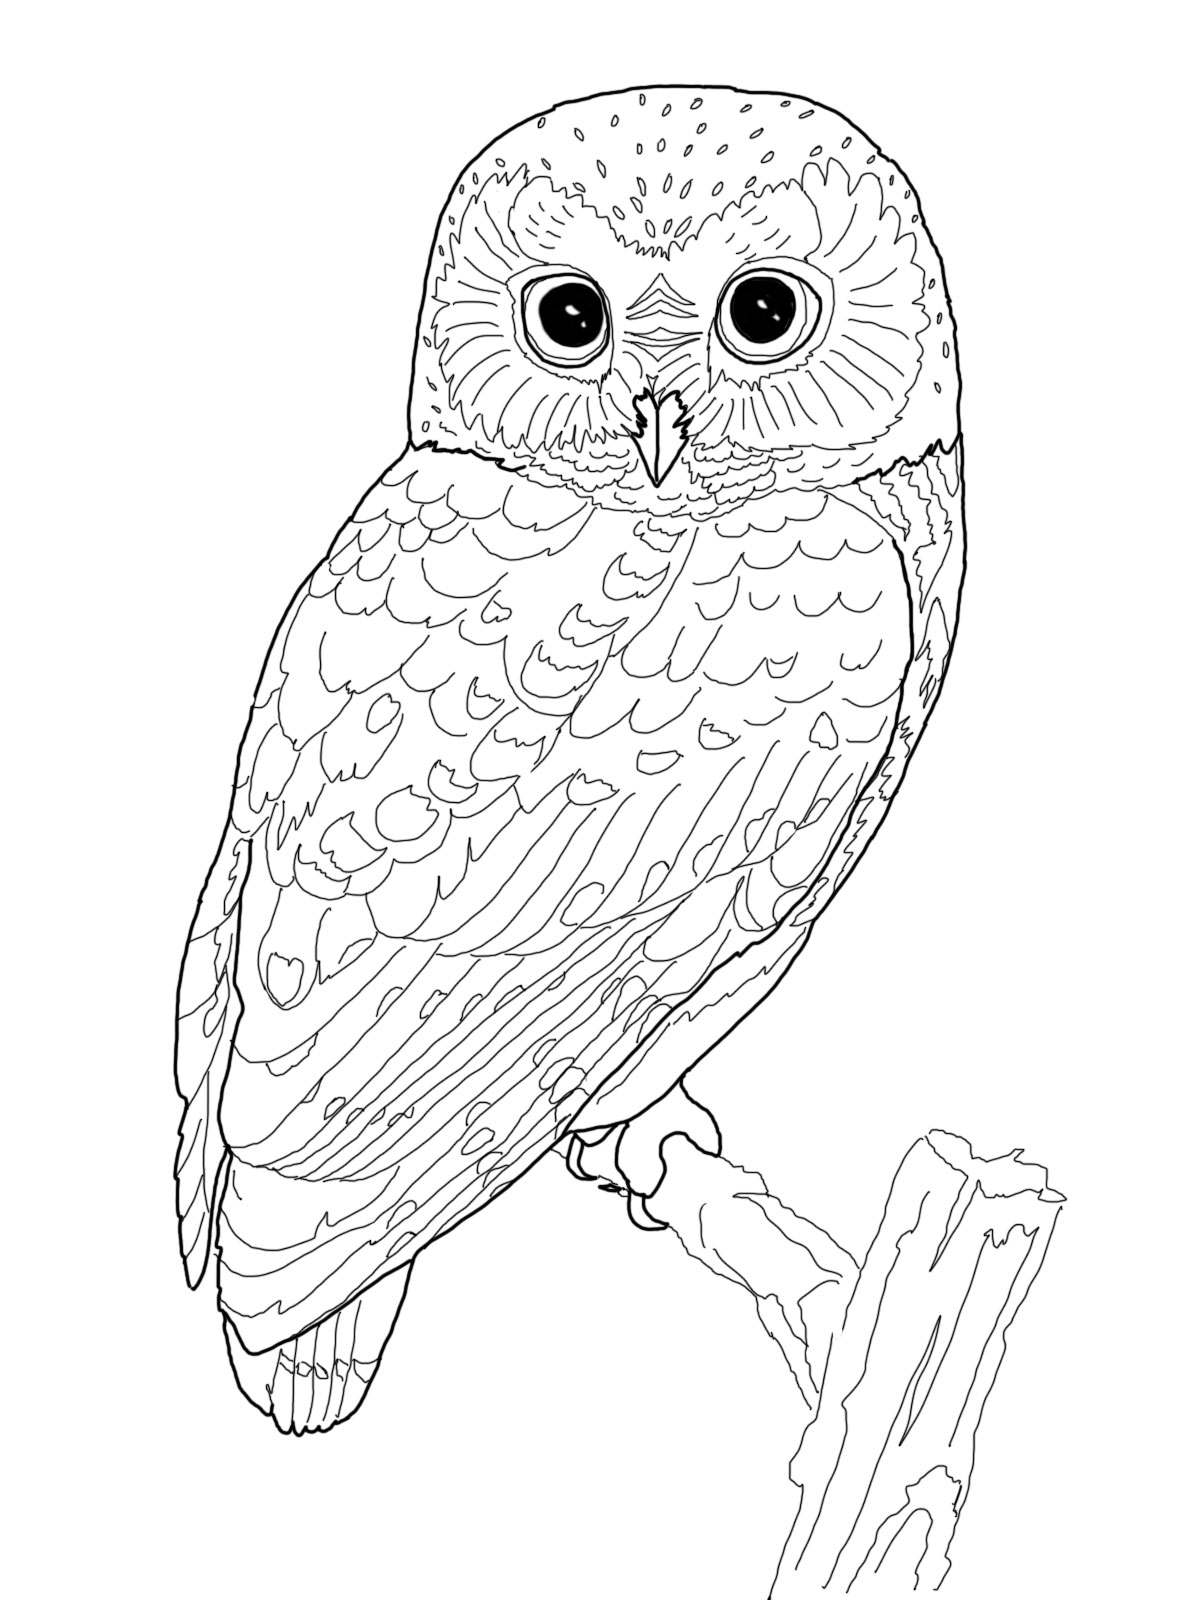 owl coloring pages owl coloring pages for adults free detailed owl coloring coloring owl pages